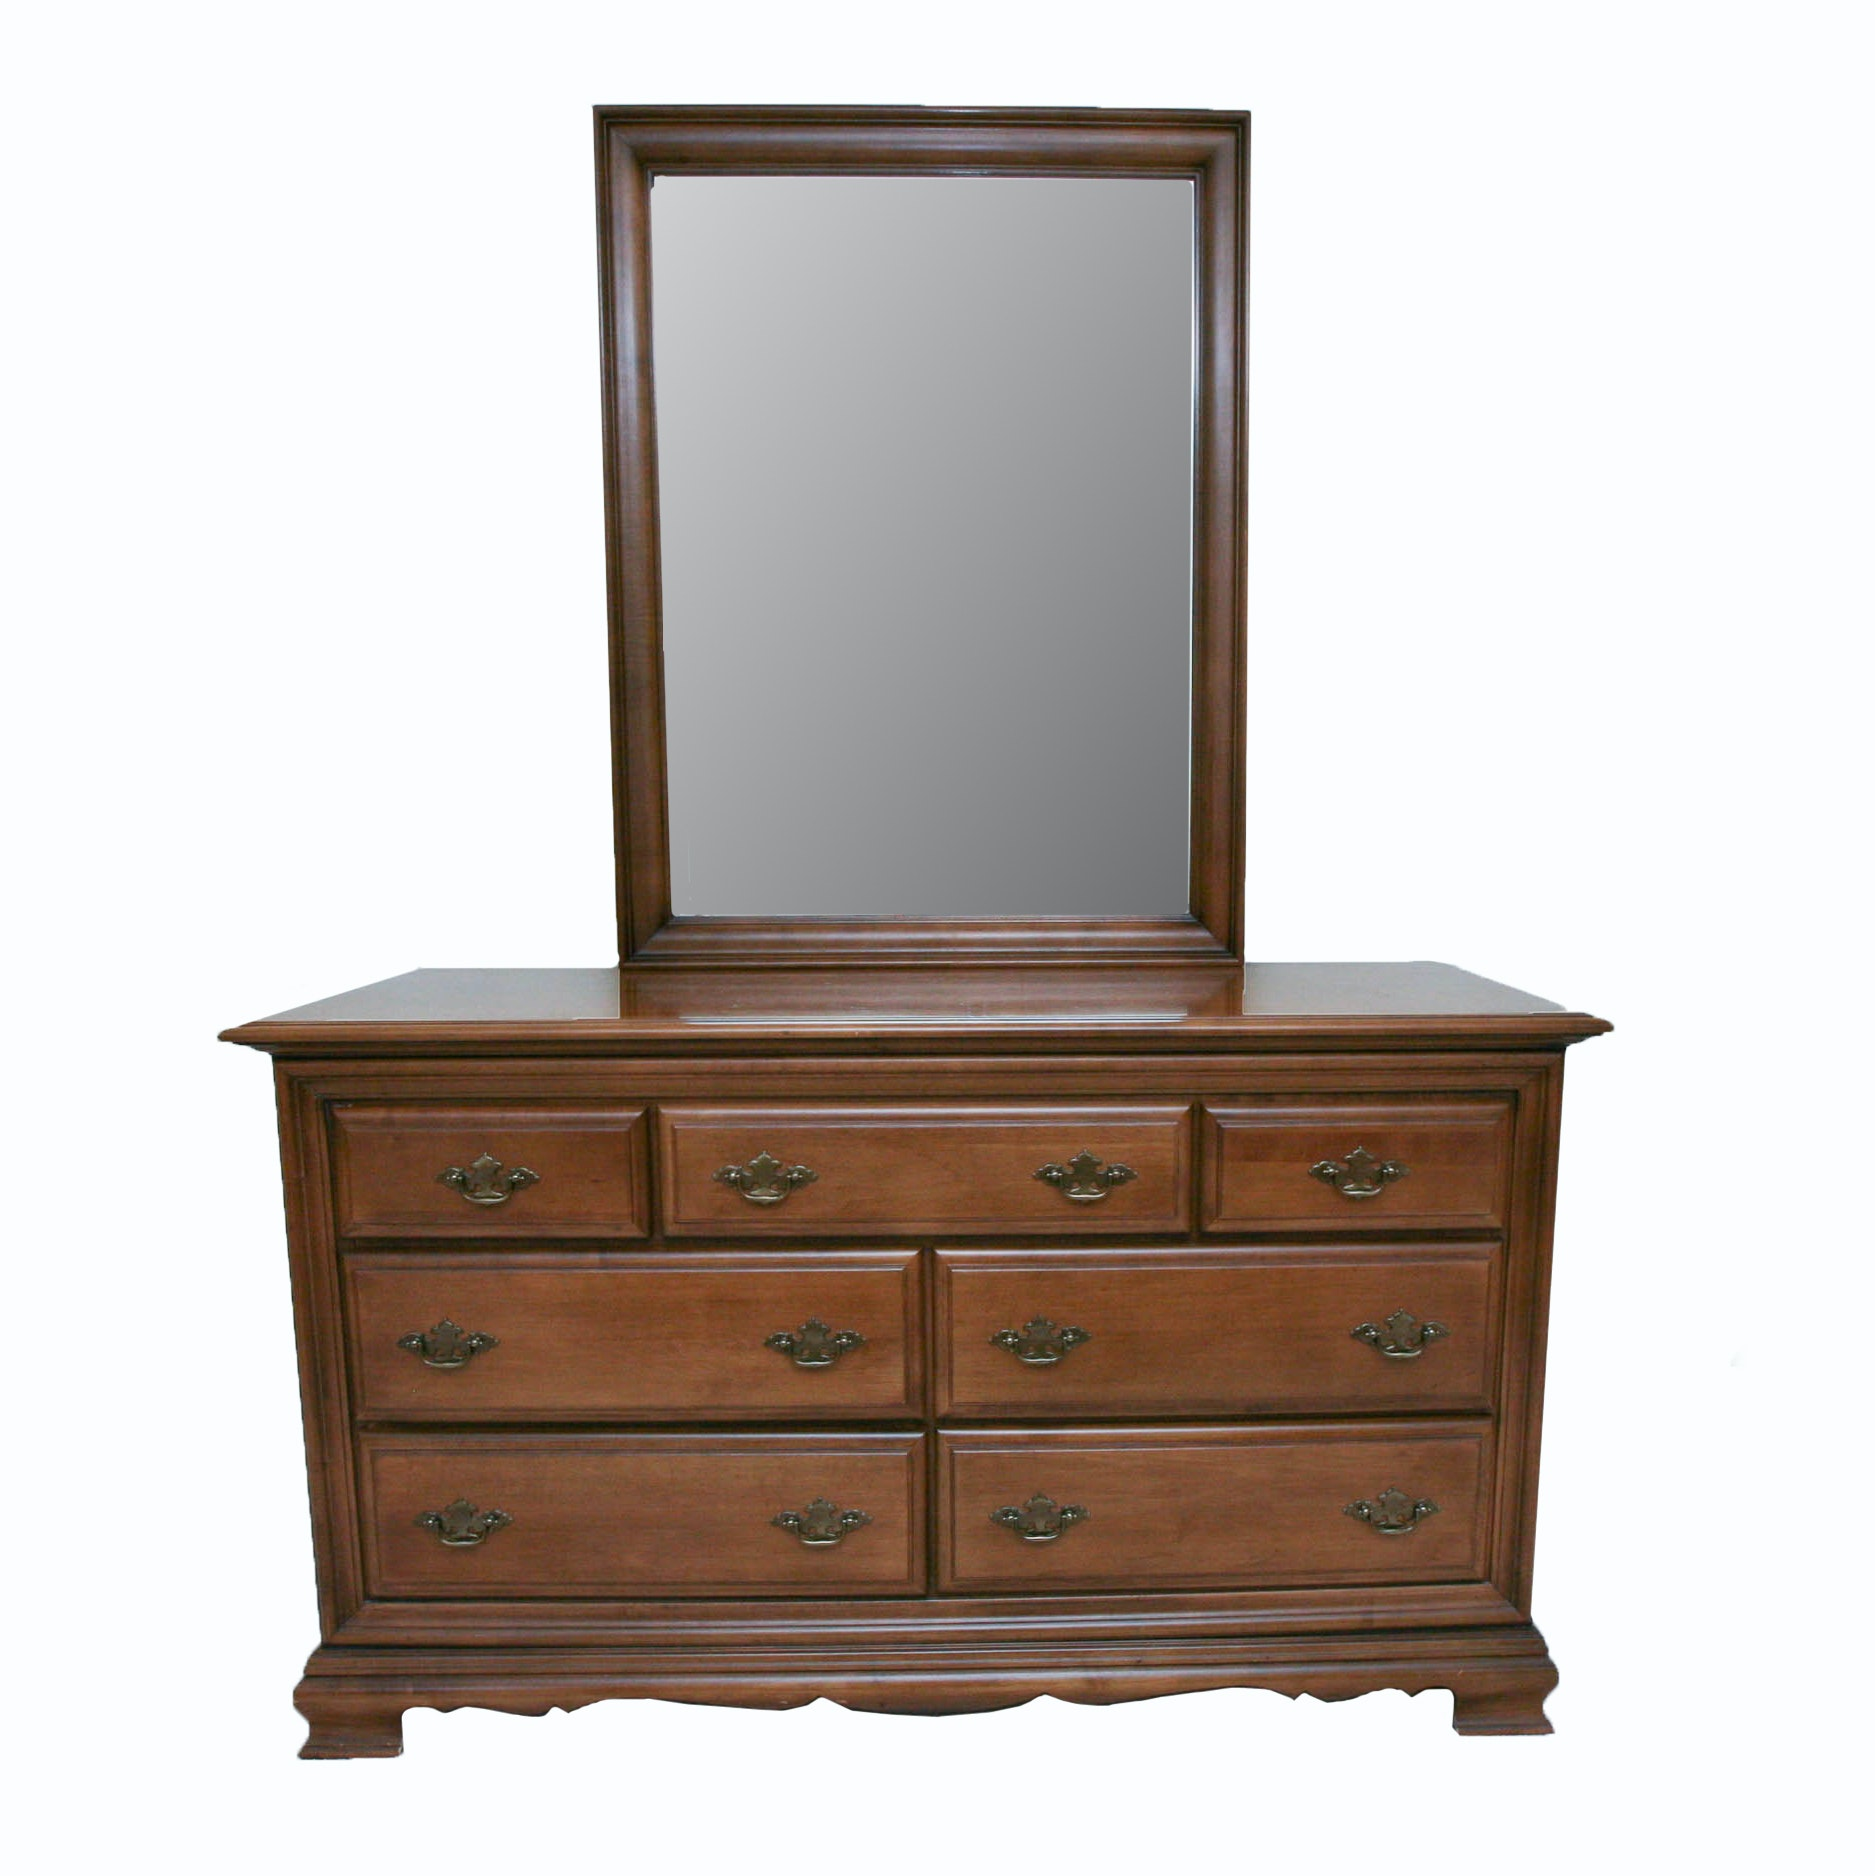 Chest of Drawers with Vanity Mirror